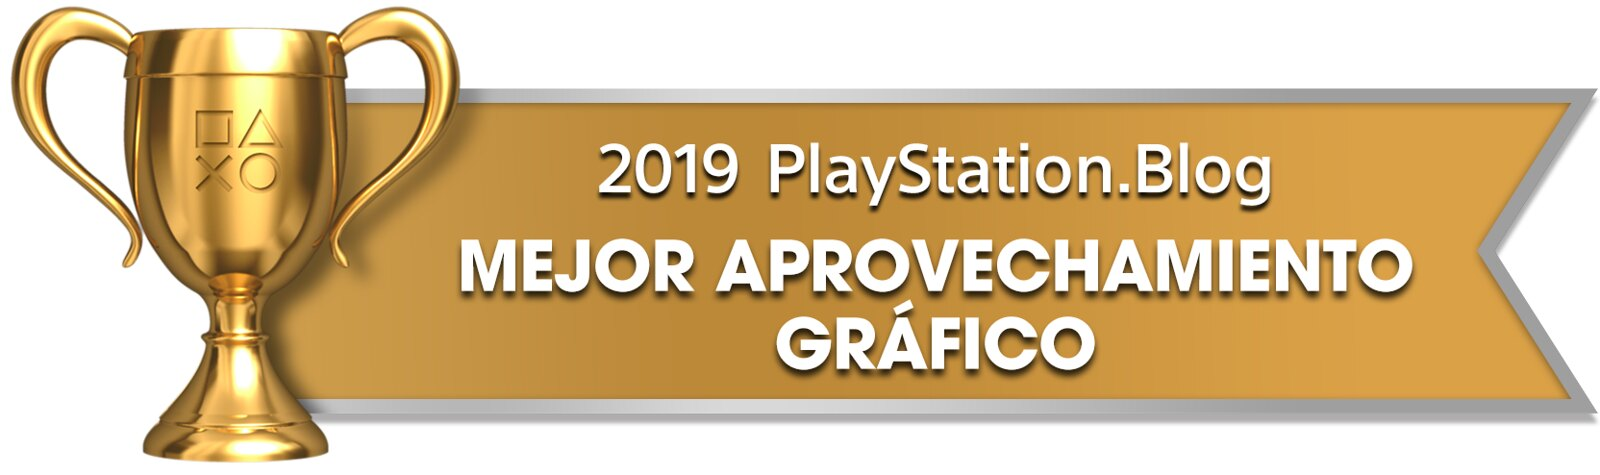 PS Blog Game of the Year 2019 - Best Graphical Showcase - 2 - Gold